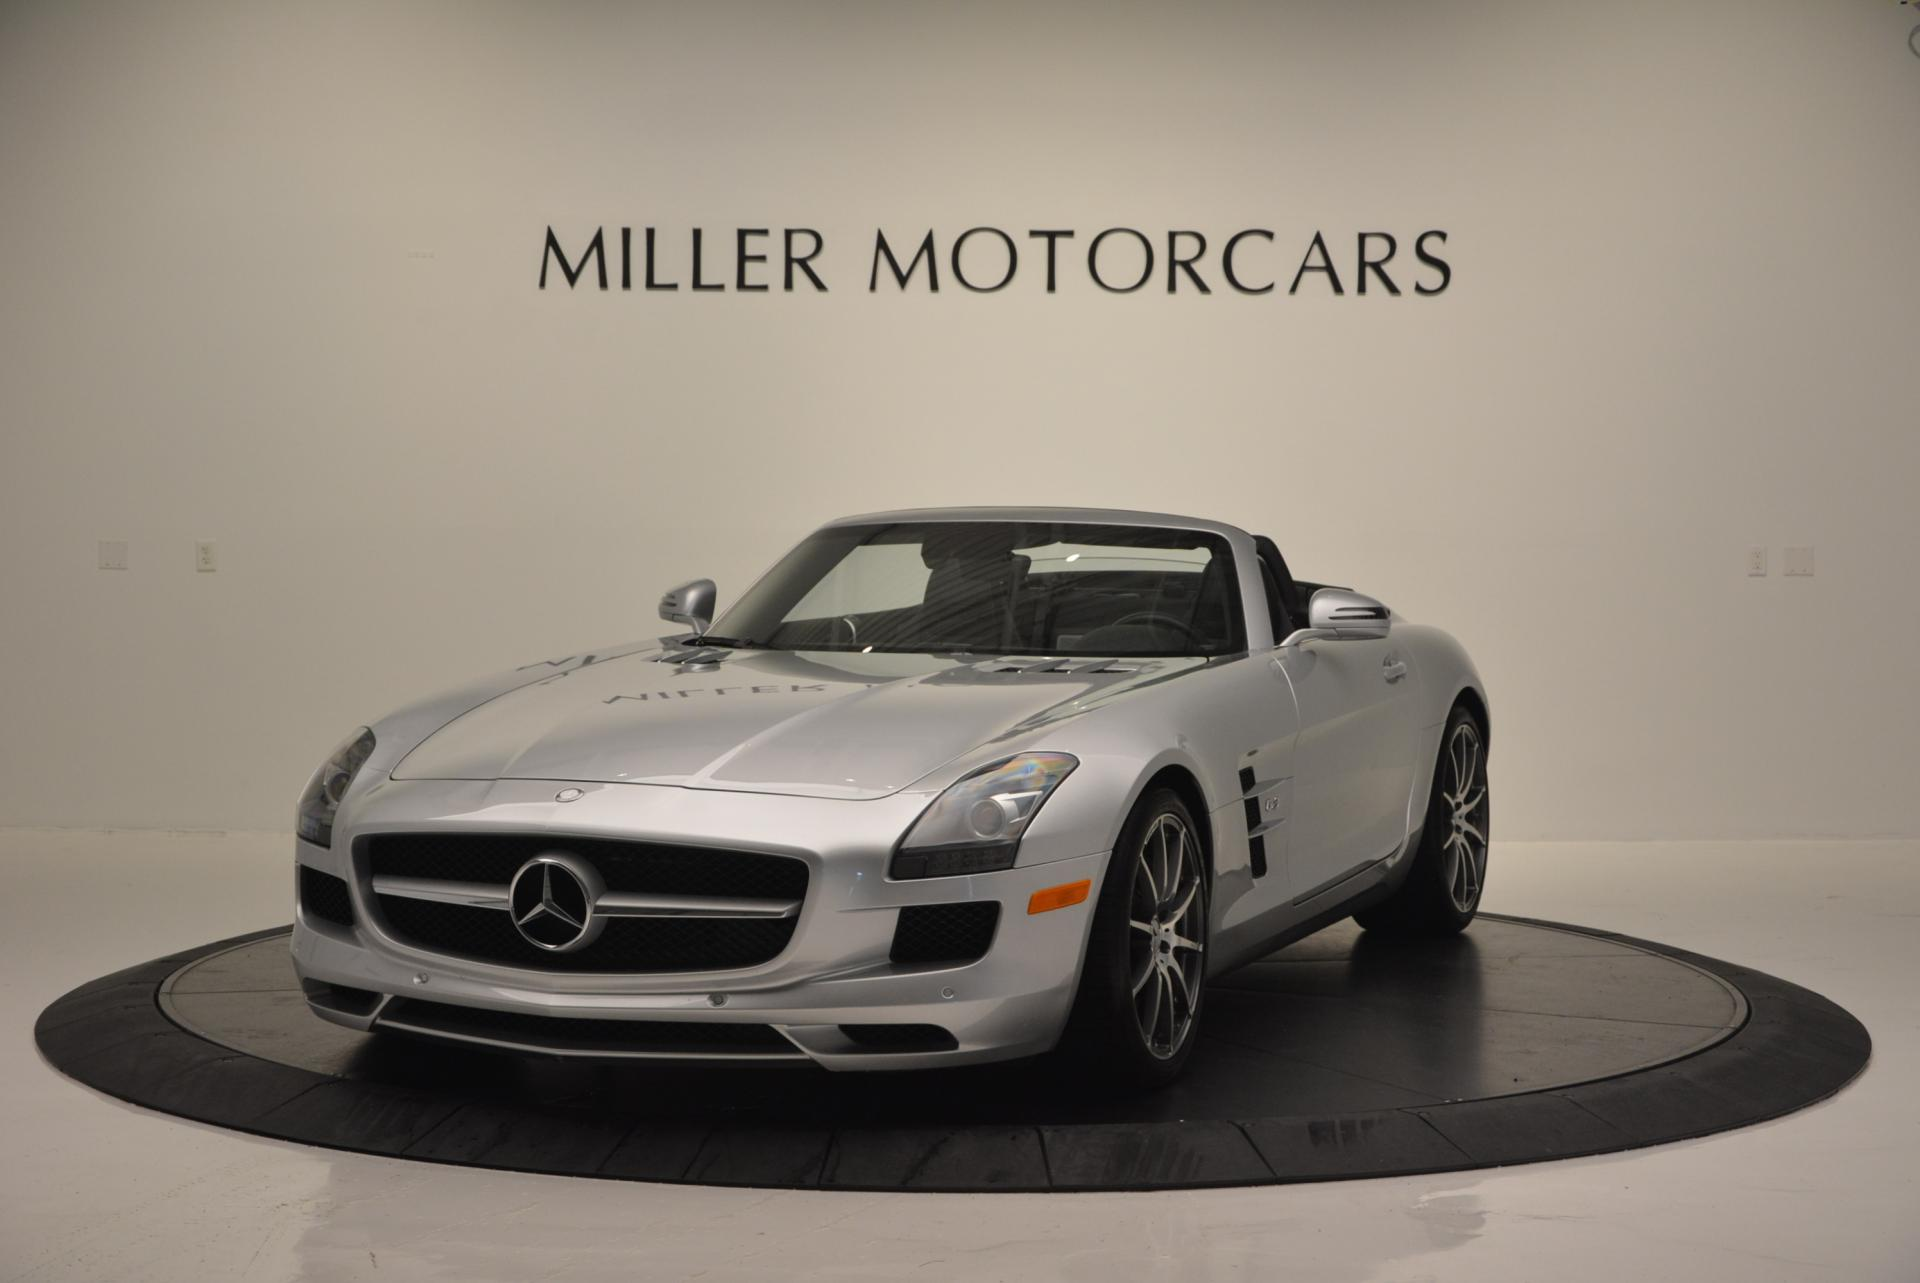 Used 2012 Mercedes Benz SLS AMG for sale Sold at Bugatti of Greenwich in Greenwich CT 06830 1